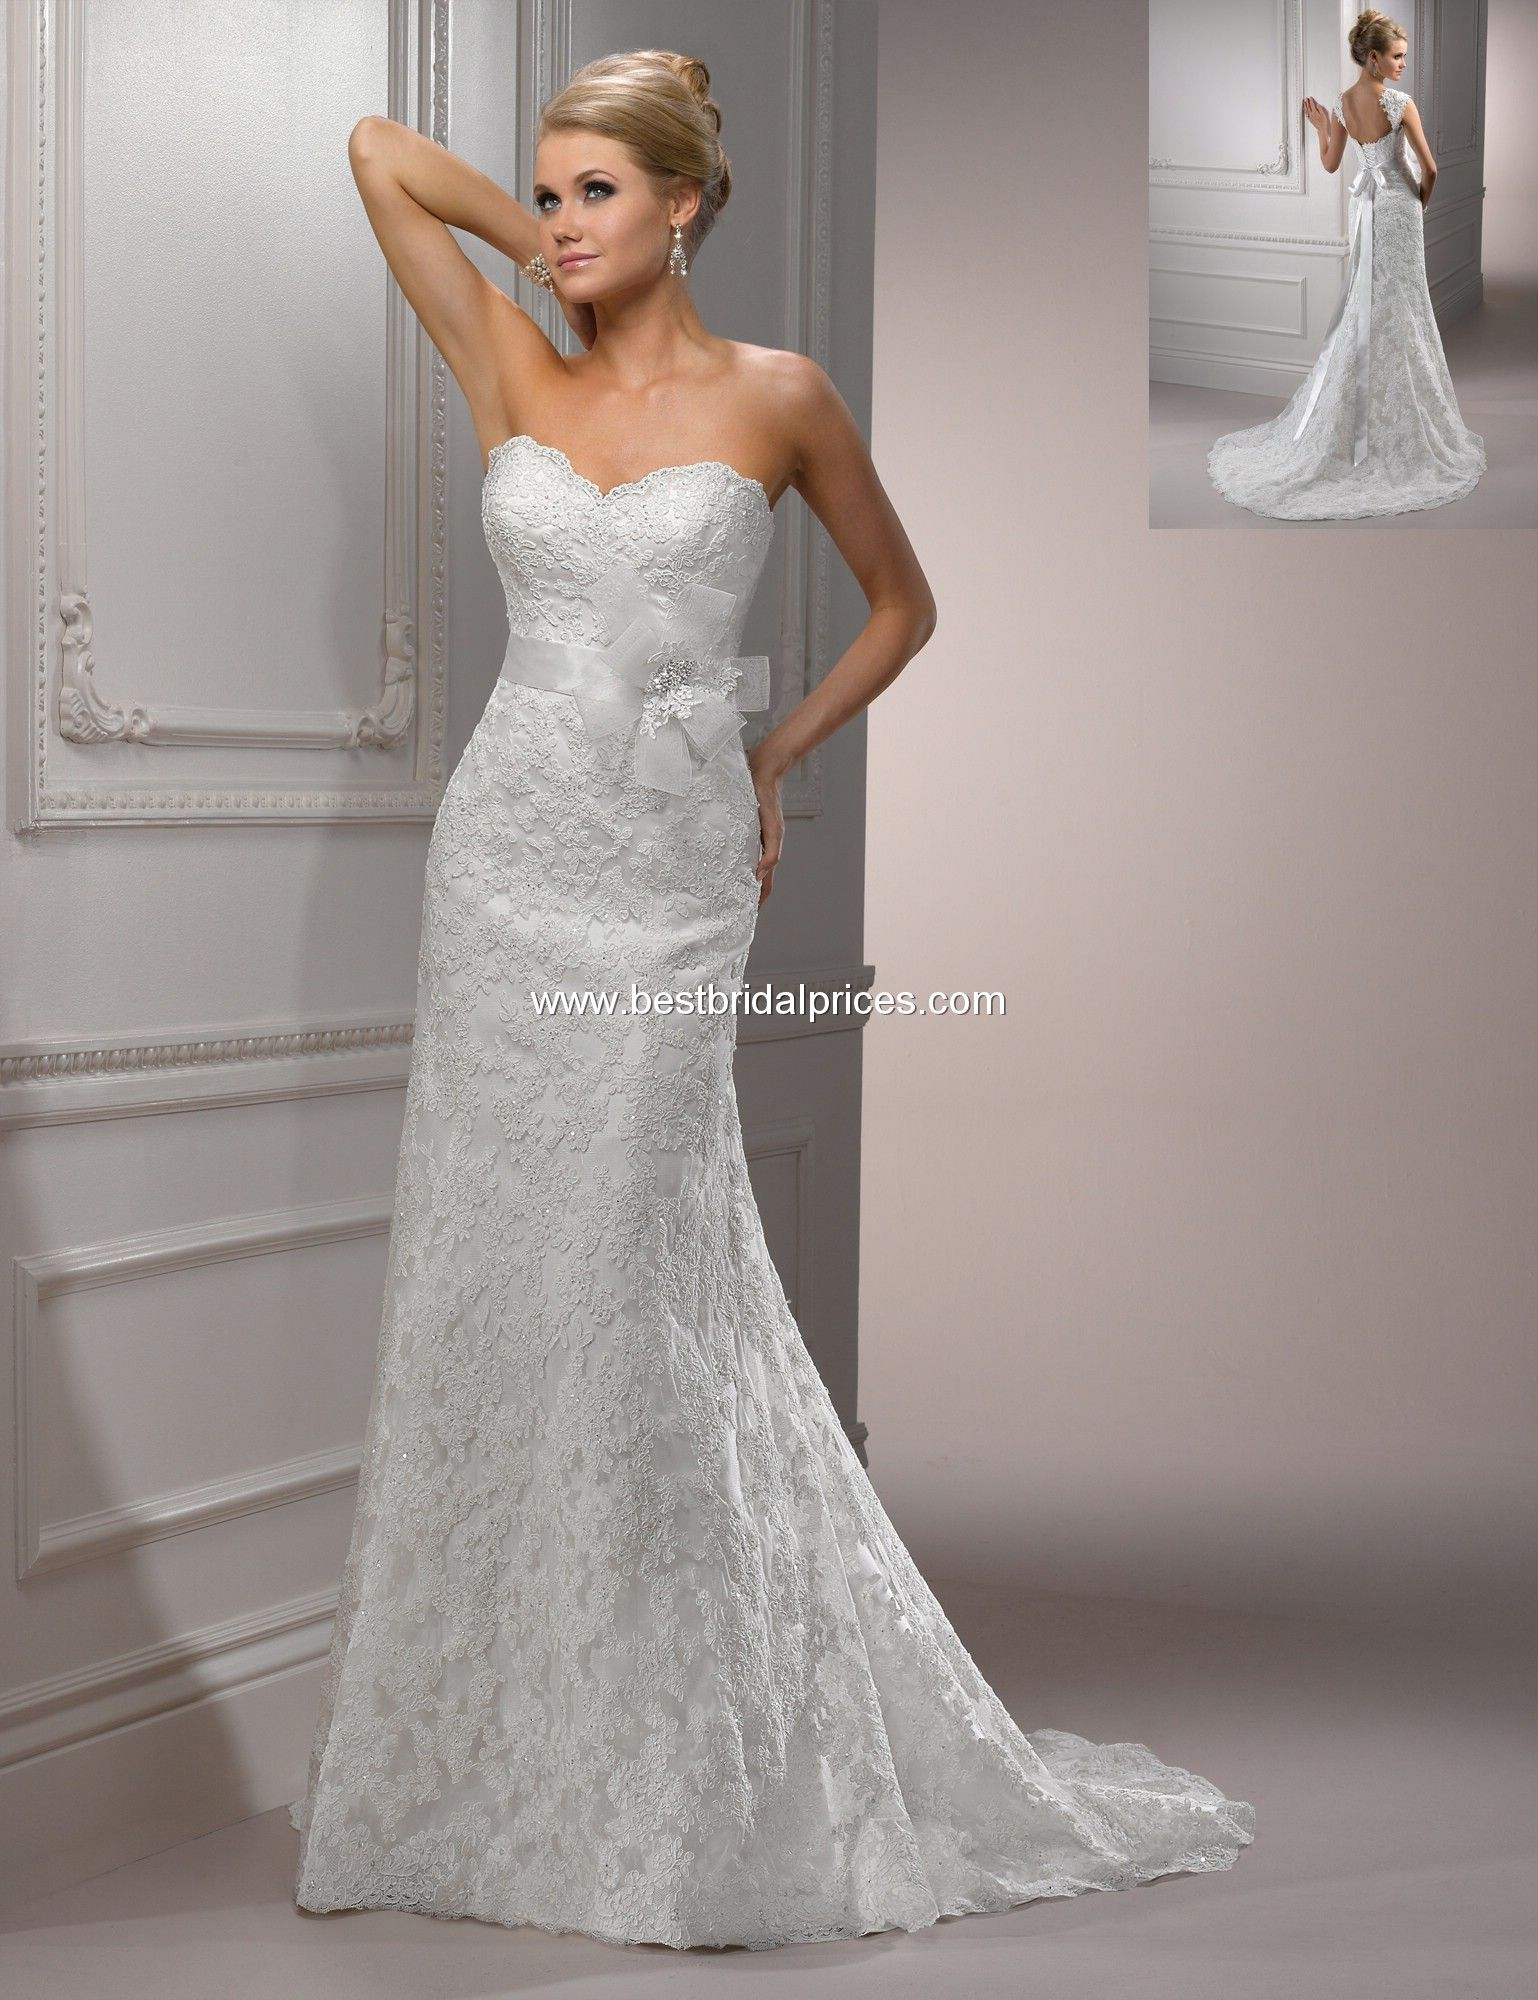 Kellyus wedding dress with out the flower bow wedding